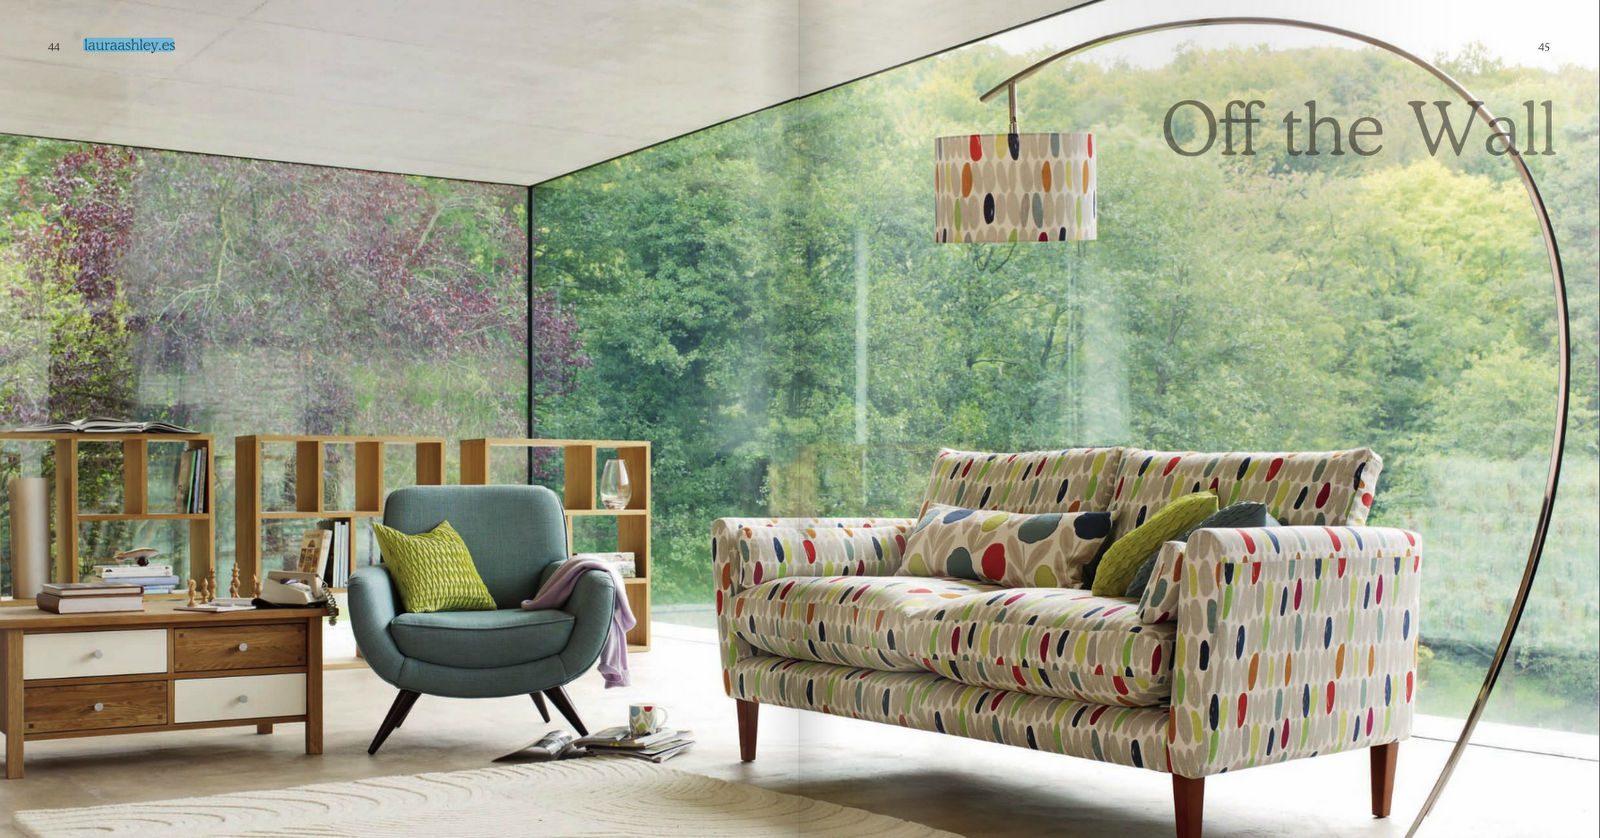 Laura Ashley Muebles Decoramos Con Laura Ashley Estudio Lota